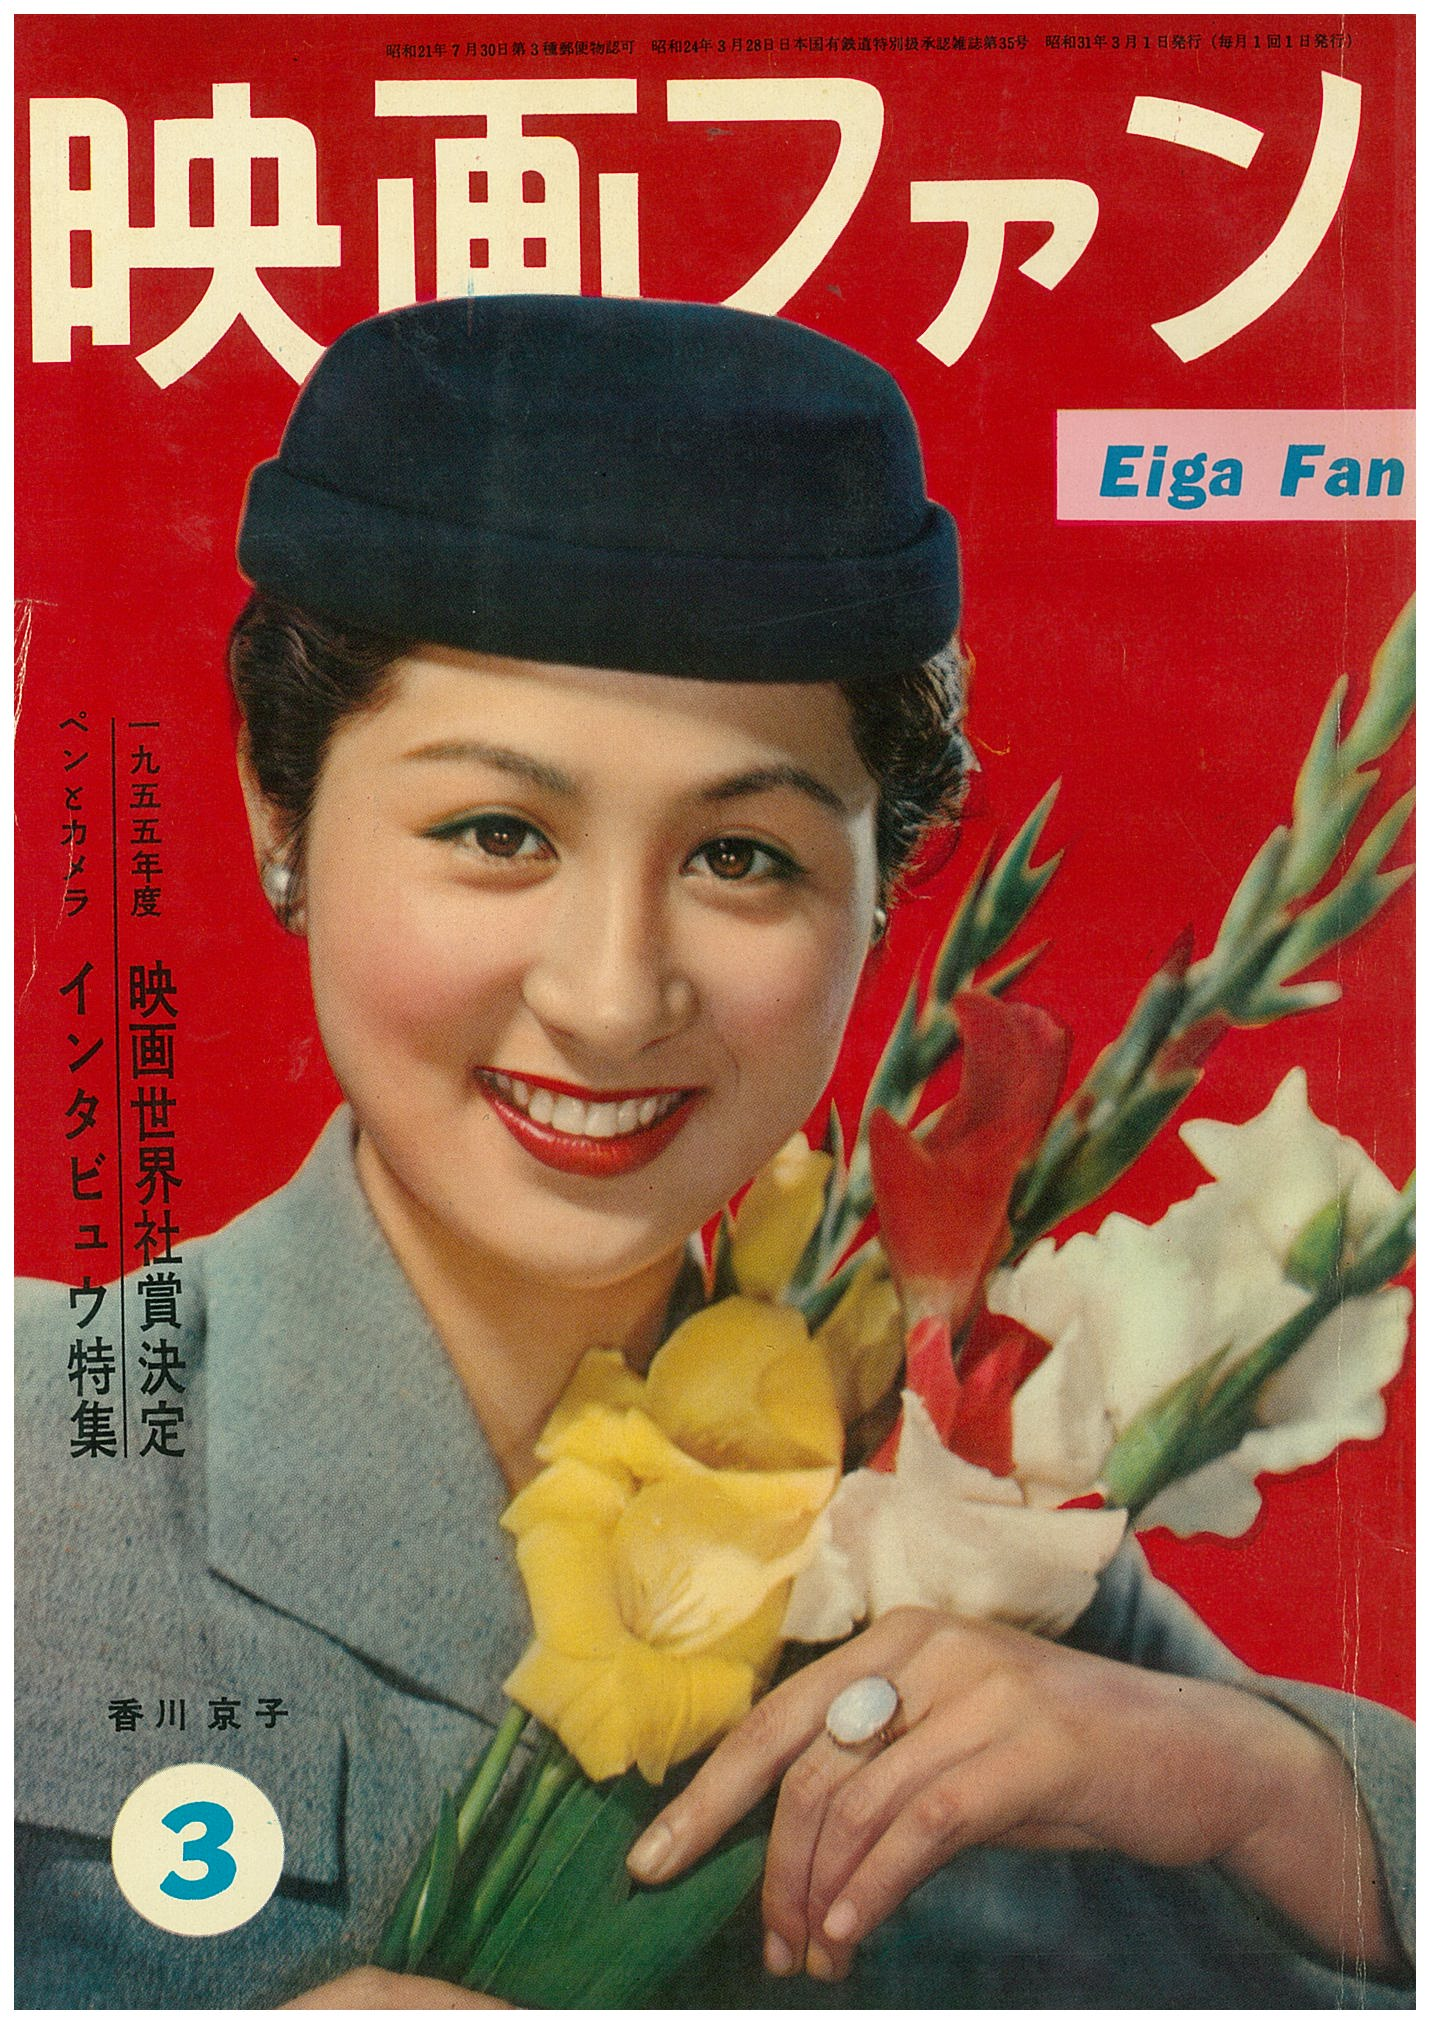 - Kyoko Kagawa movie magazine covers from the 1950s